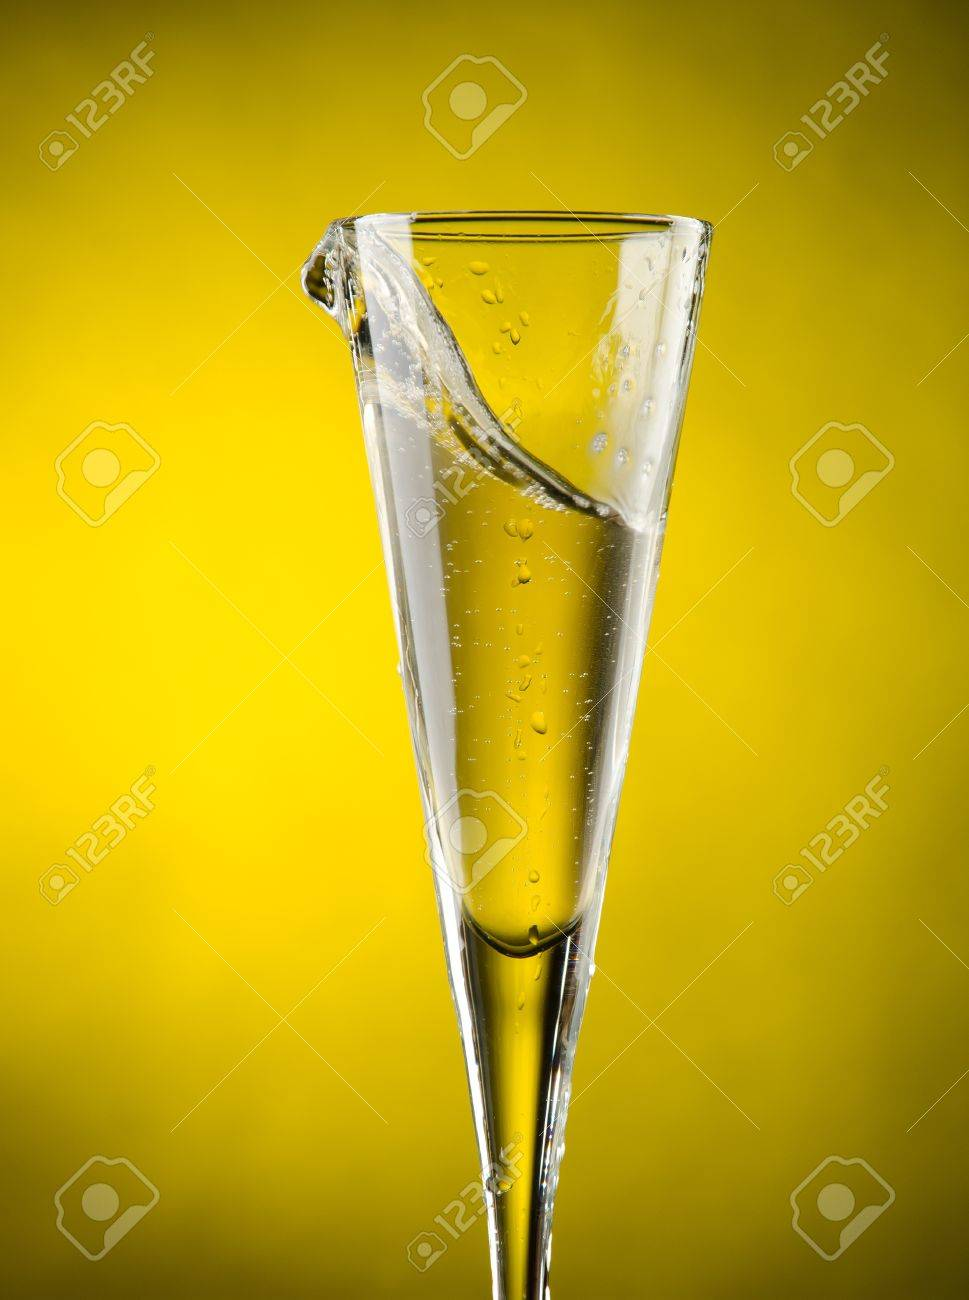 Glass of Champagne with yellow background Stock Photo - 13599734